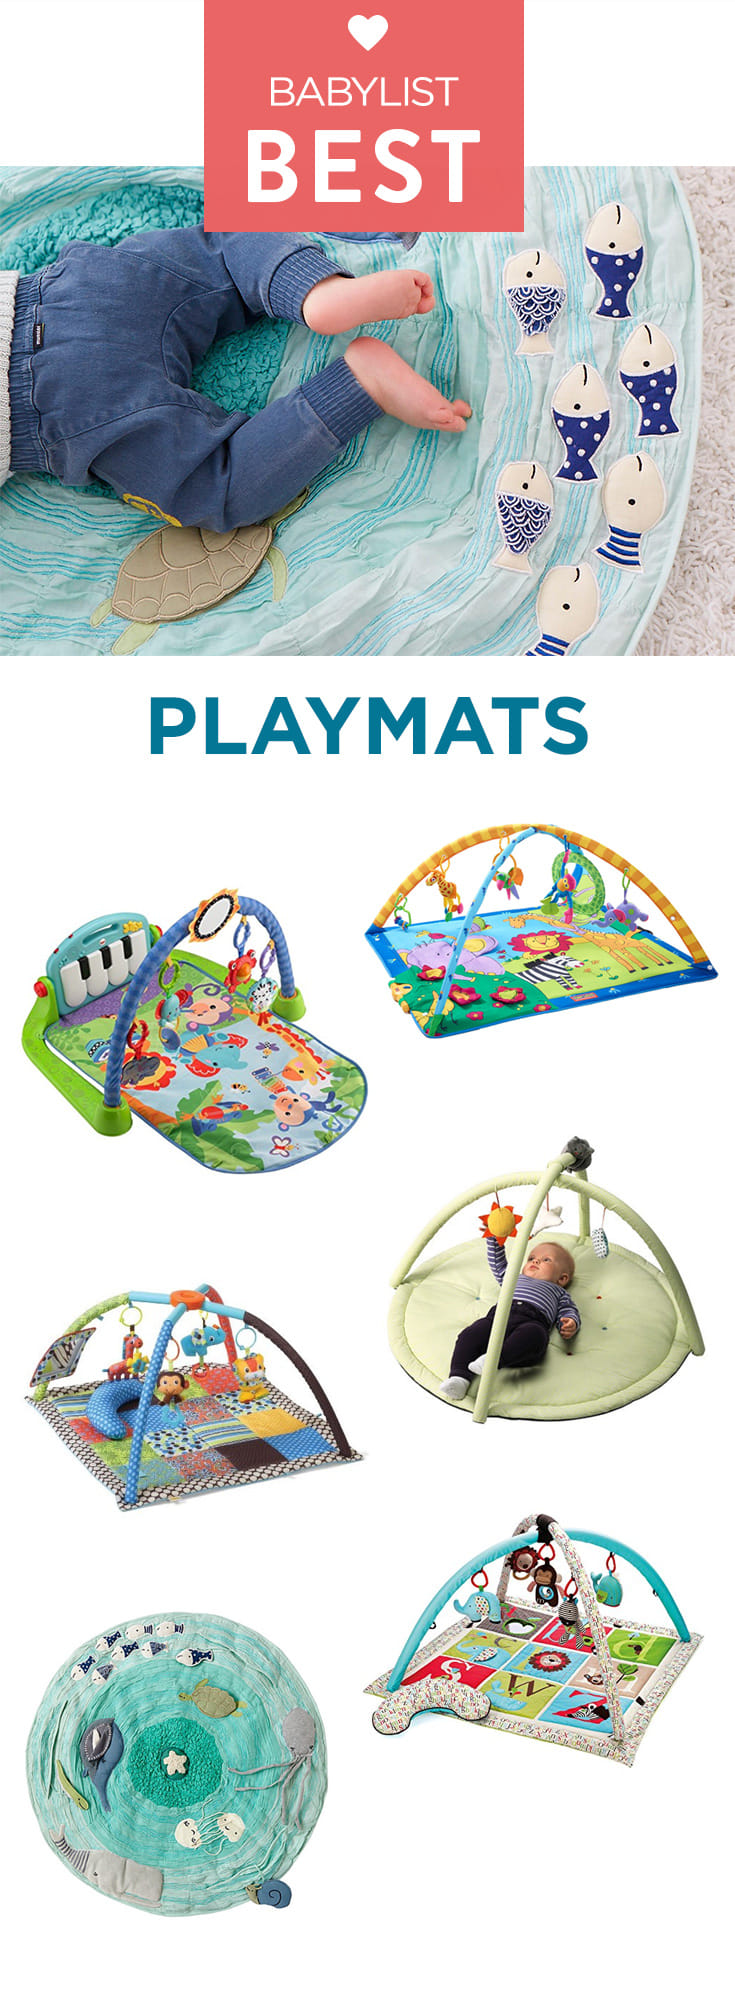 Stimulating and safe, these activity gyms will keep your baby occupied while keeping you at ease.